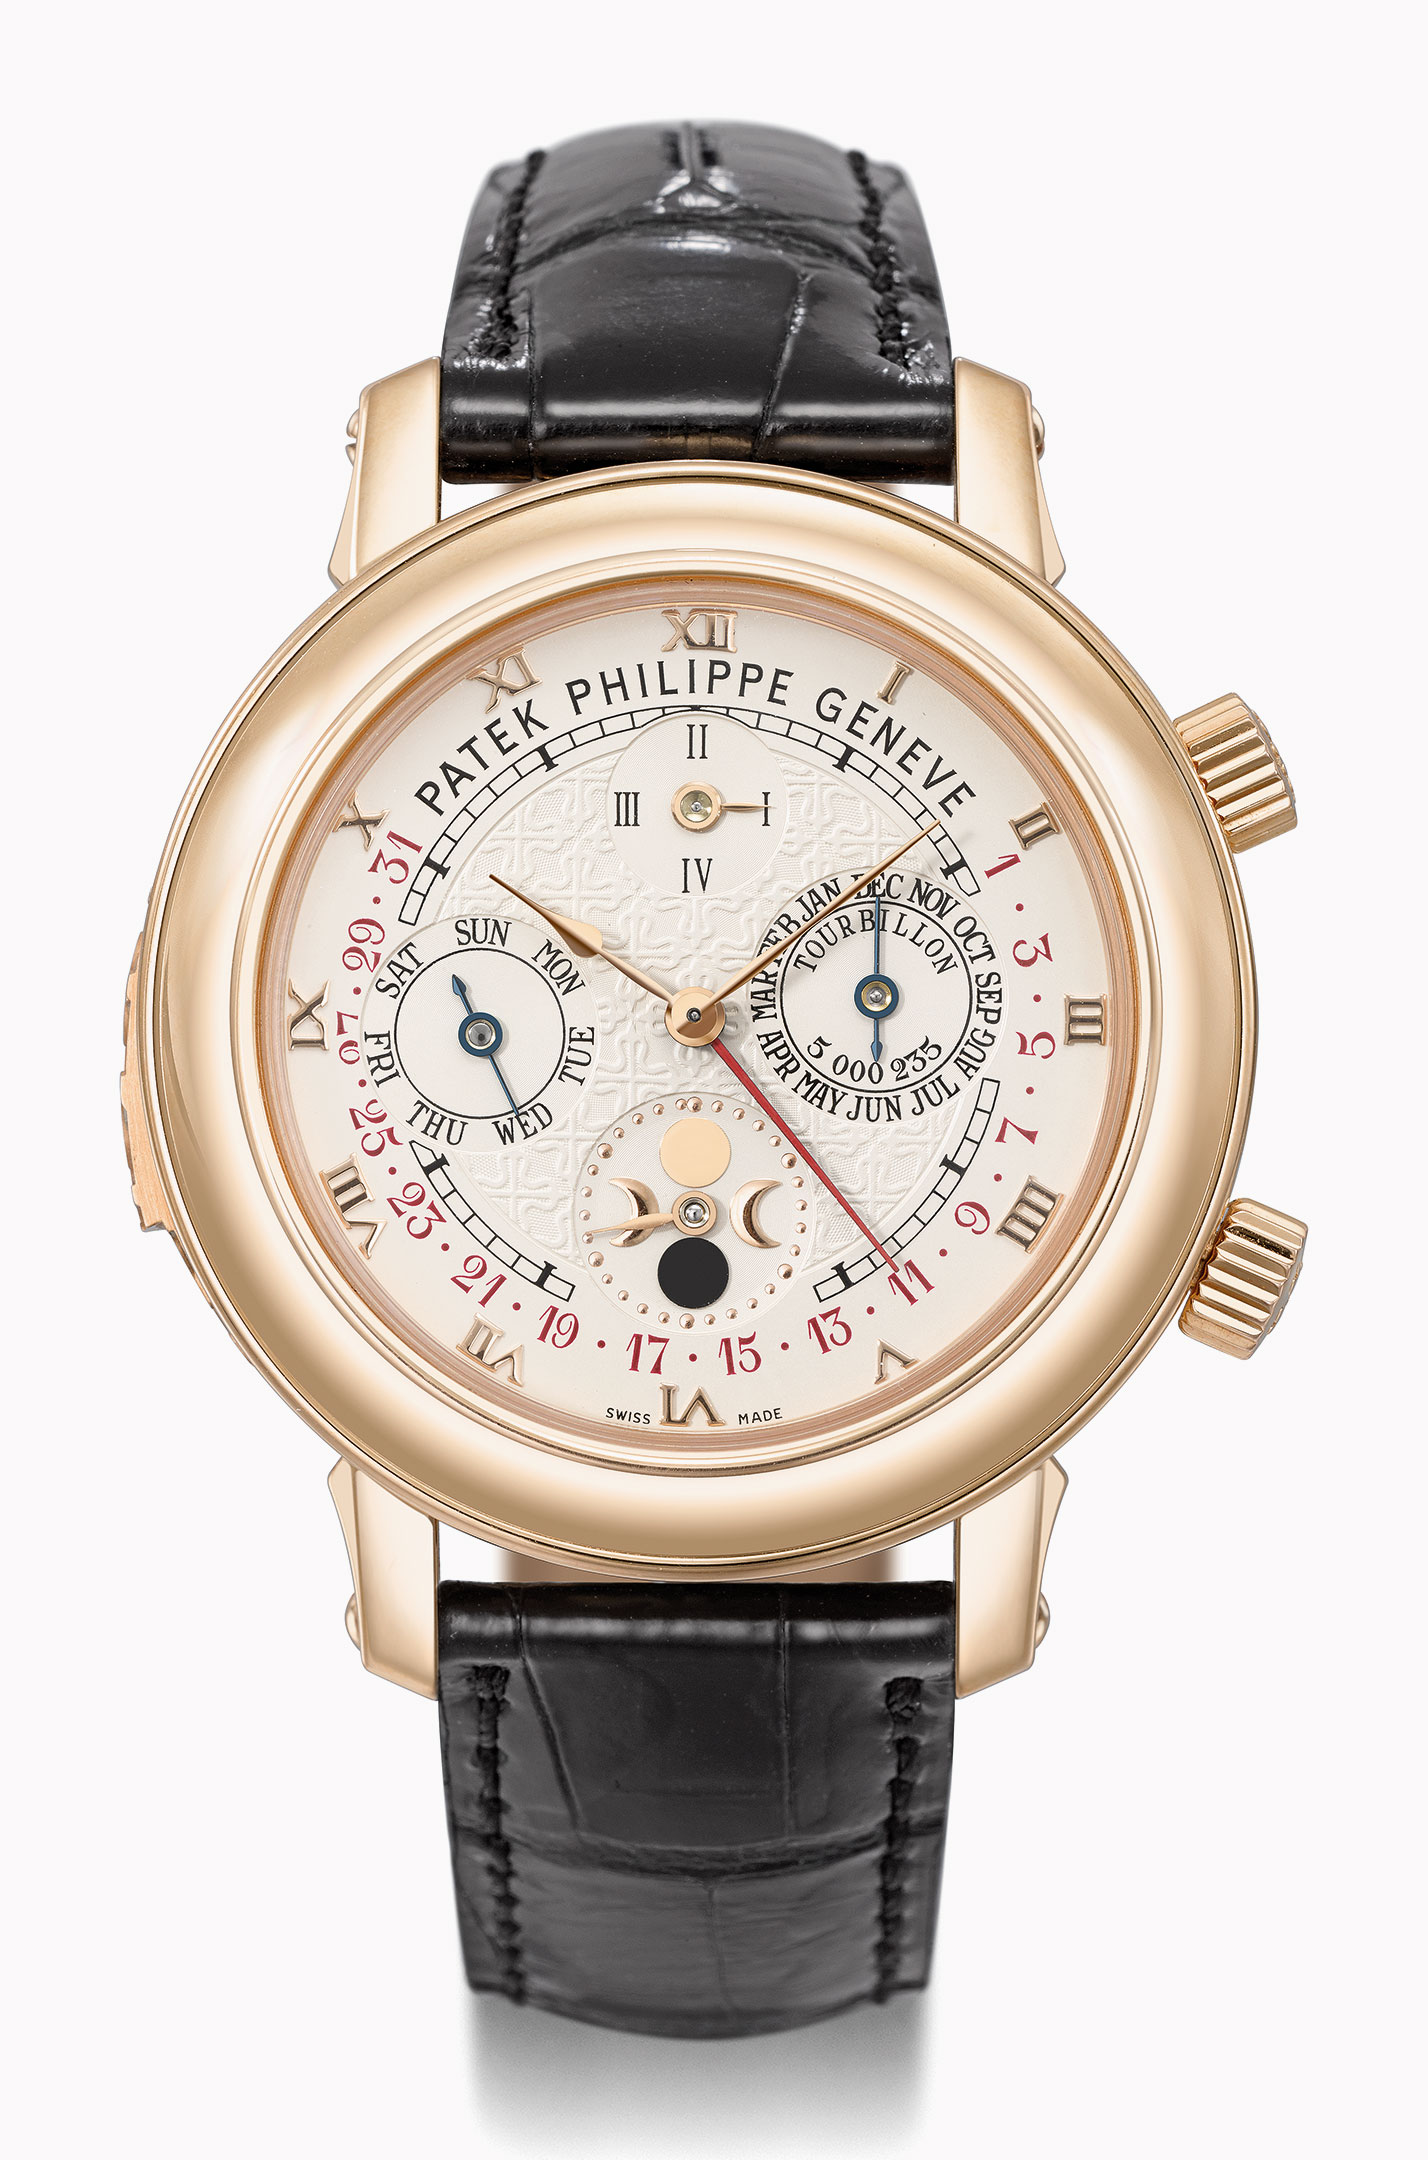 Patek philippe tourbillon watches